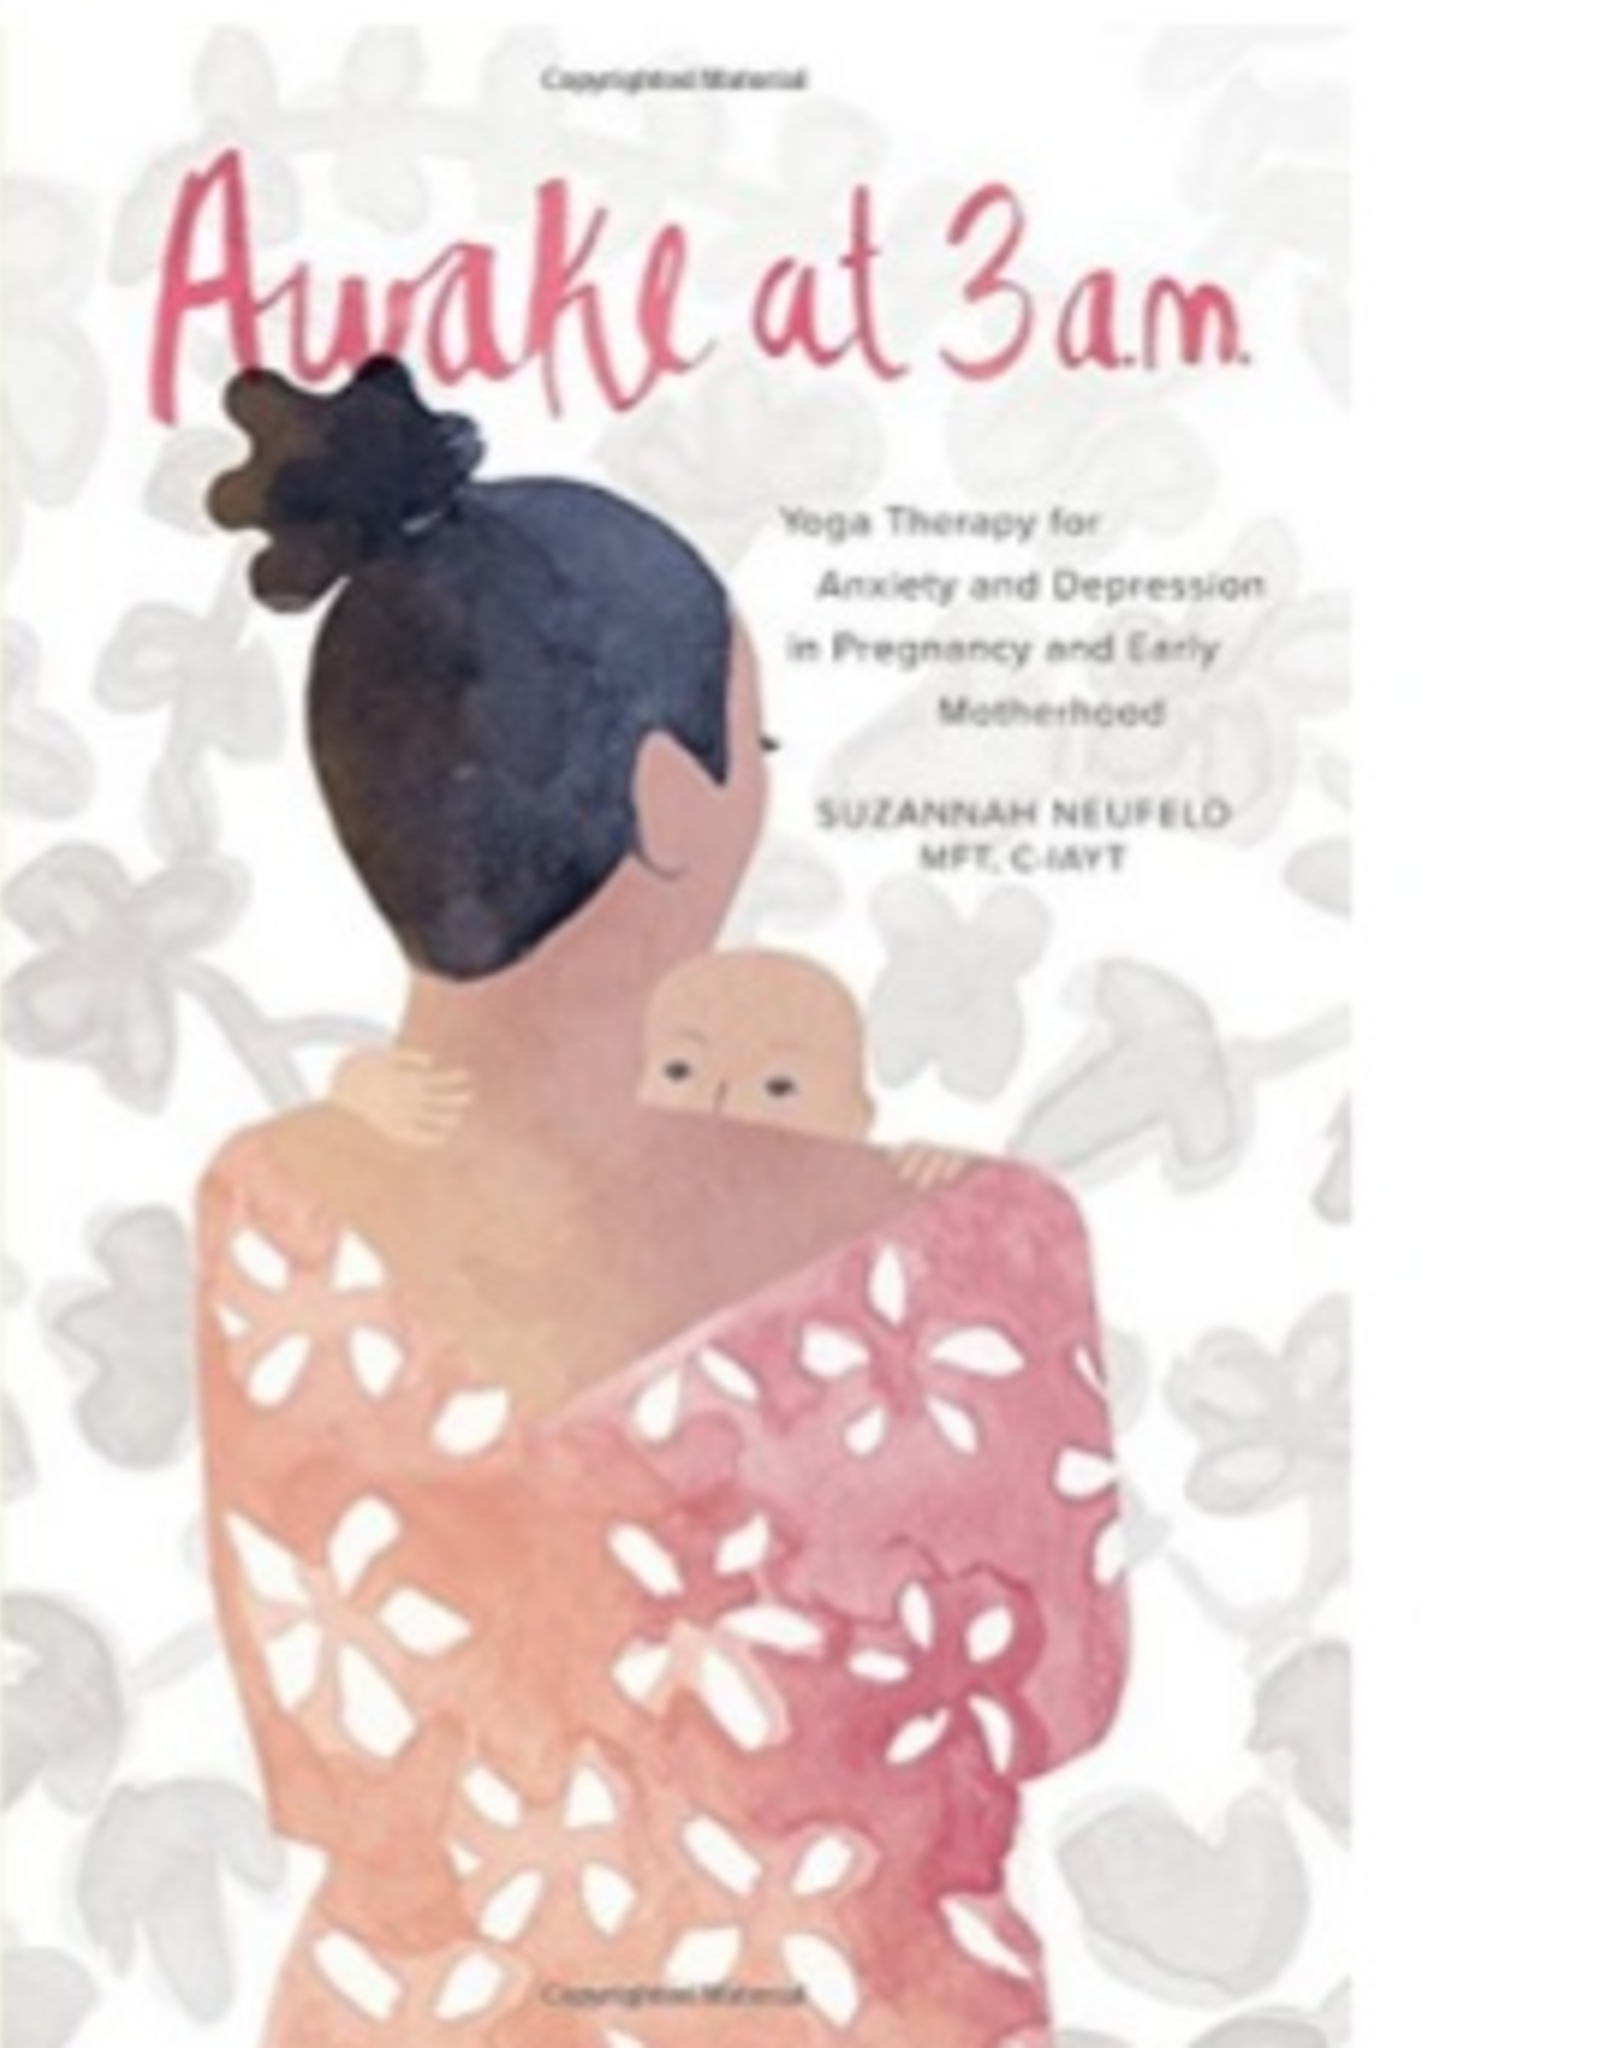 Awake At 3 AM: Yoga Therapy for Anxiety and Depression in Pregnancy